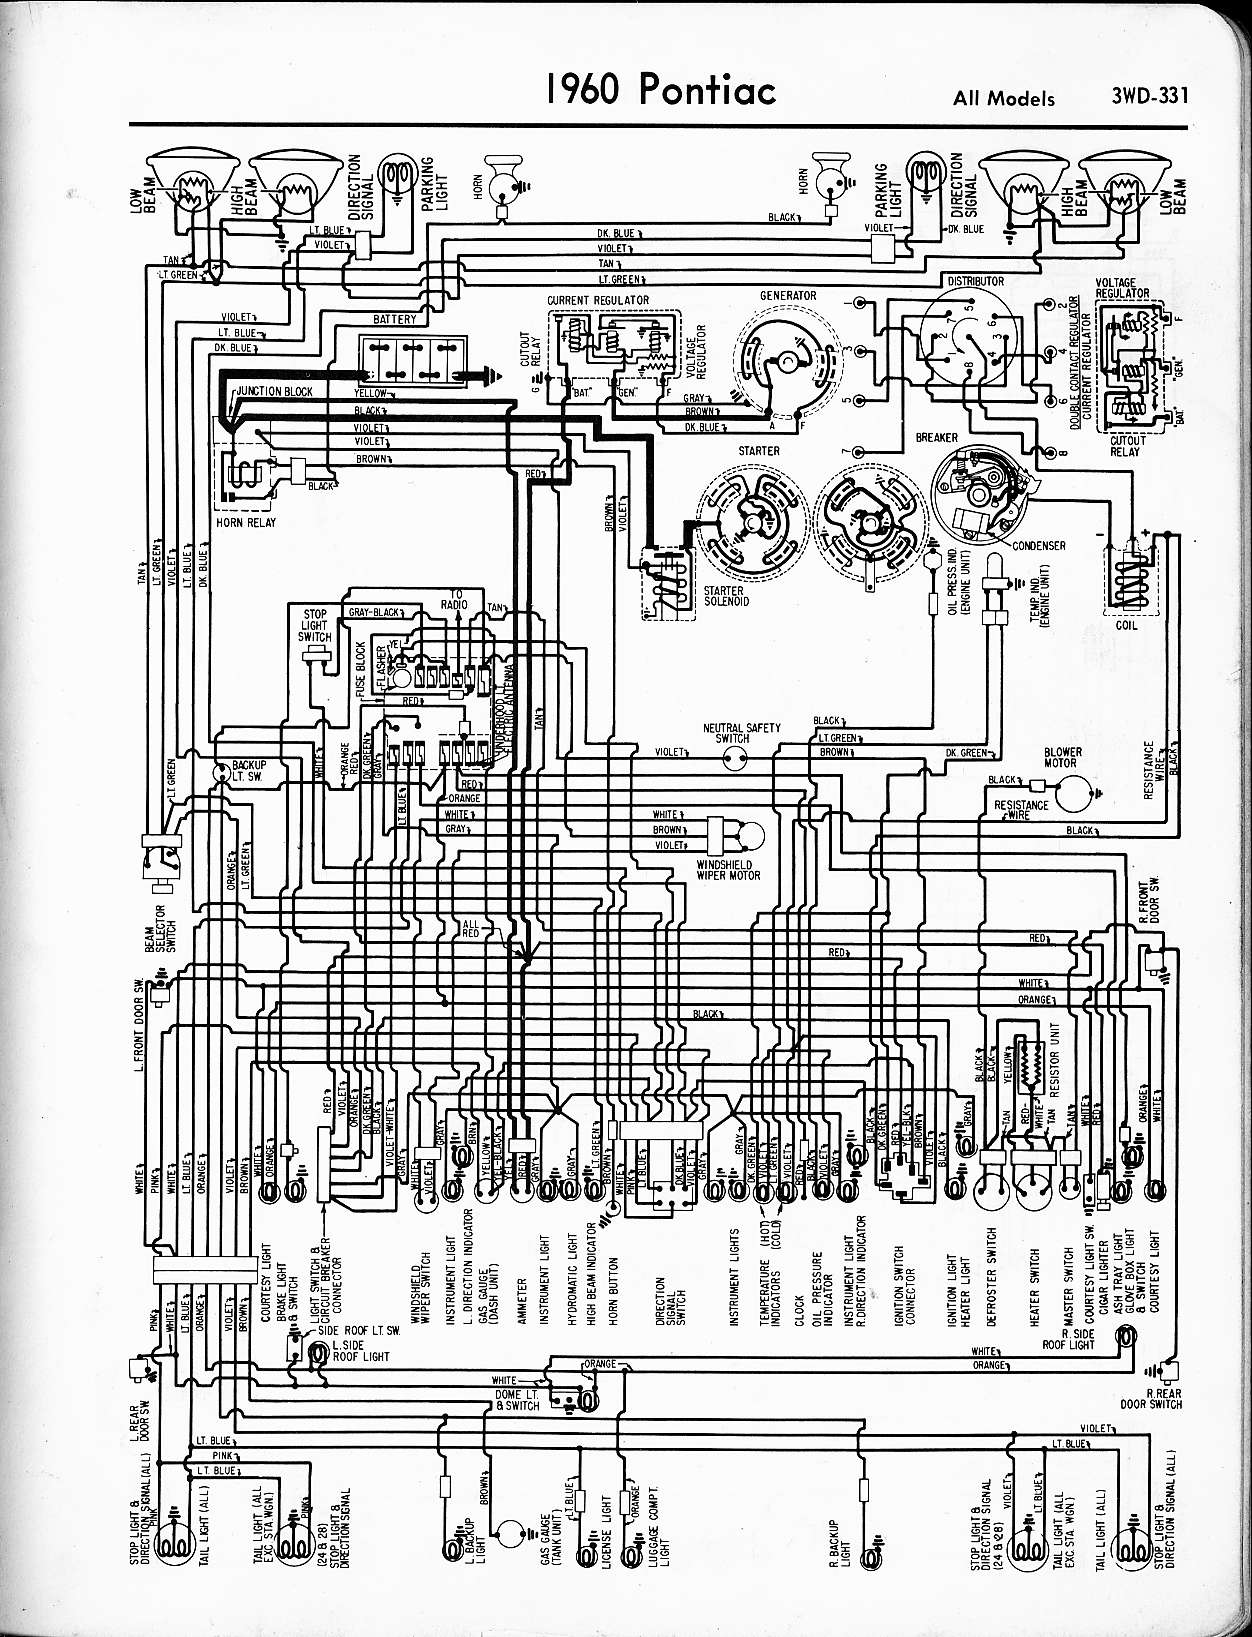 wallace racing wiring diagrams rh wallaceracing com 1966 pontiac bonneville wiring diagram 1965 pontiac bonneville wiring diagram